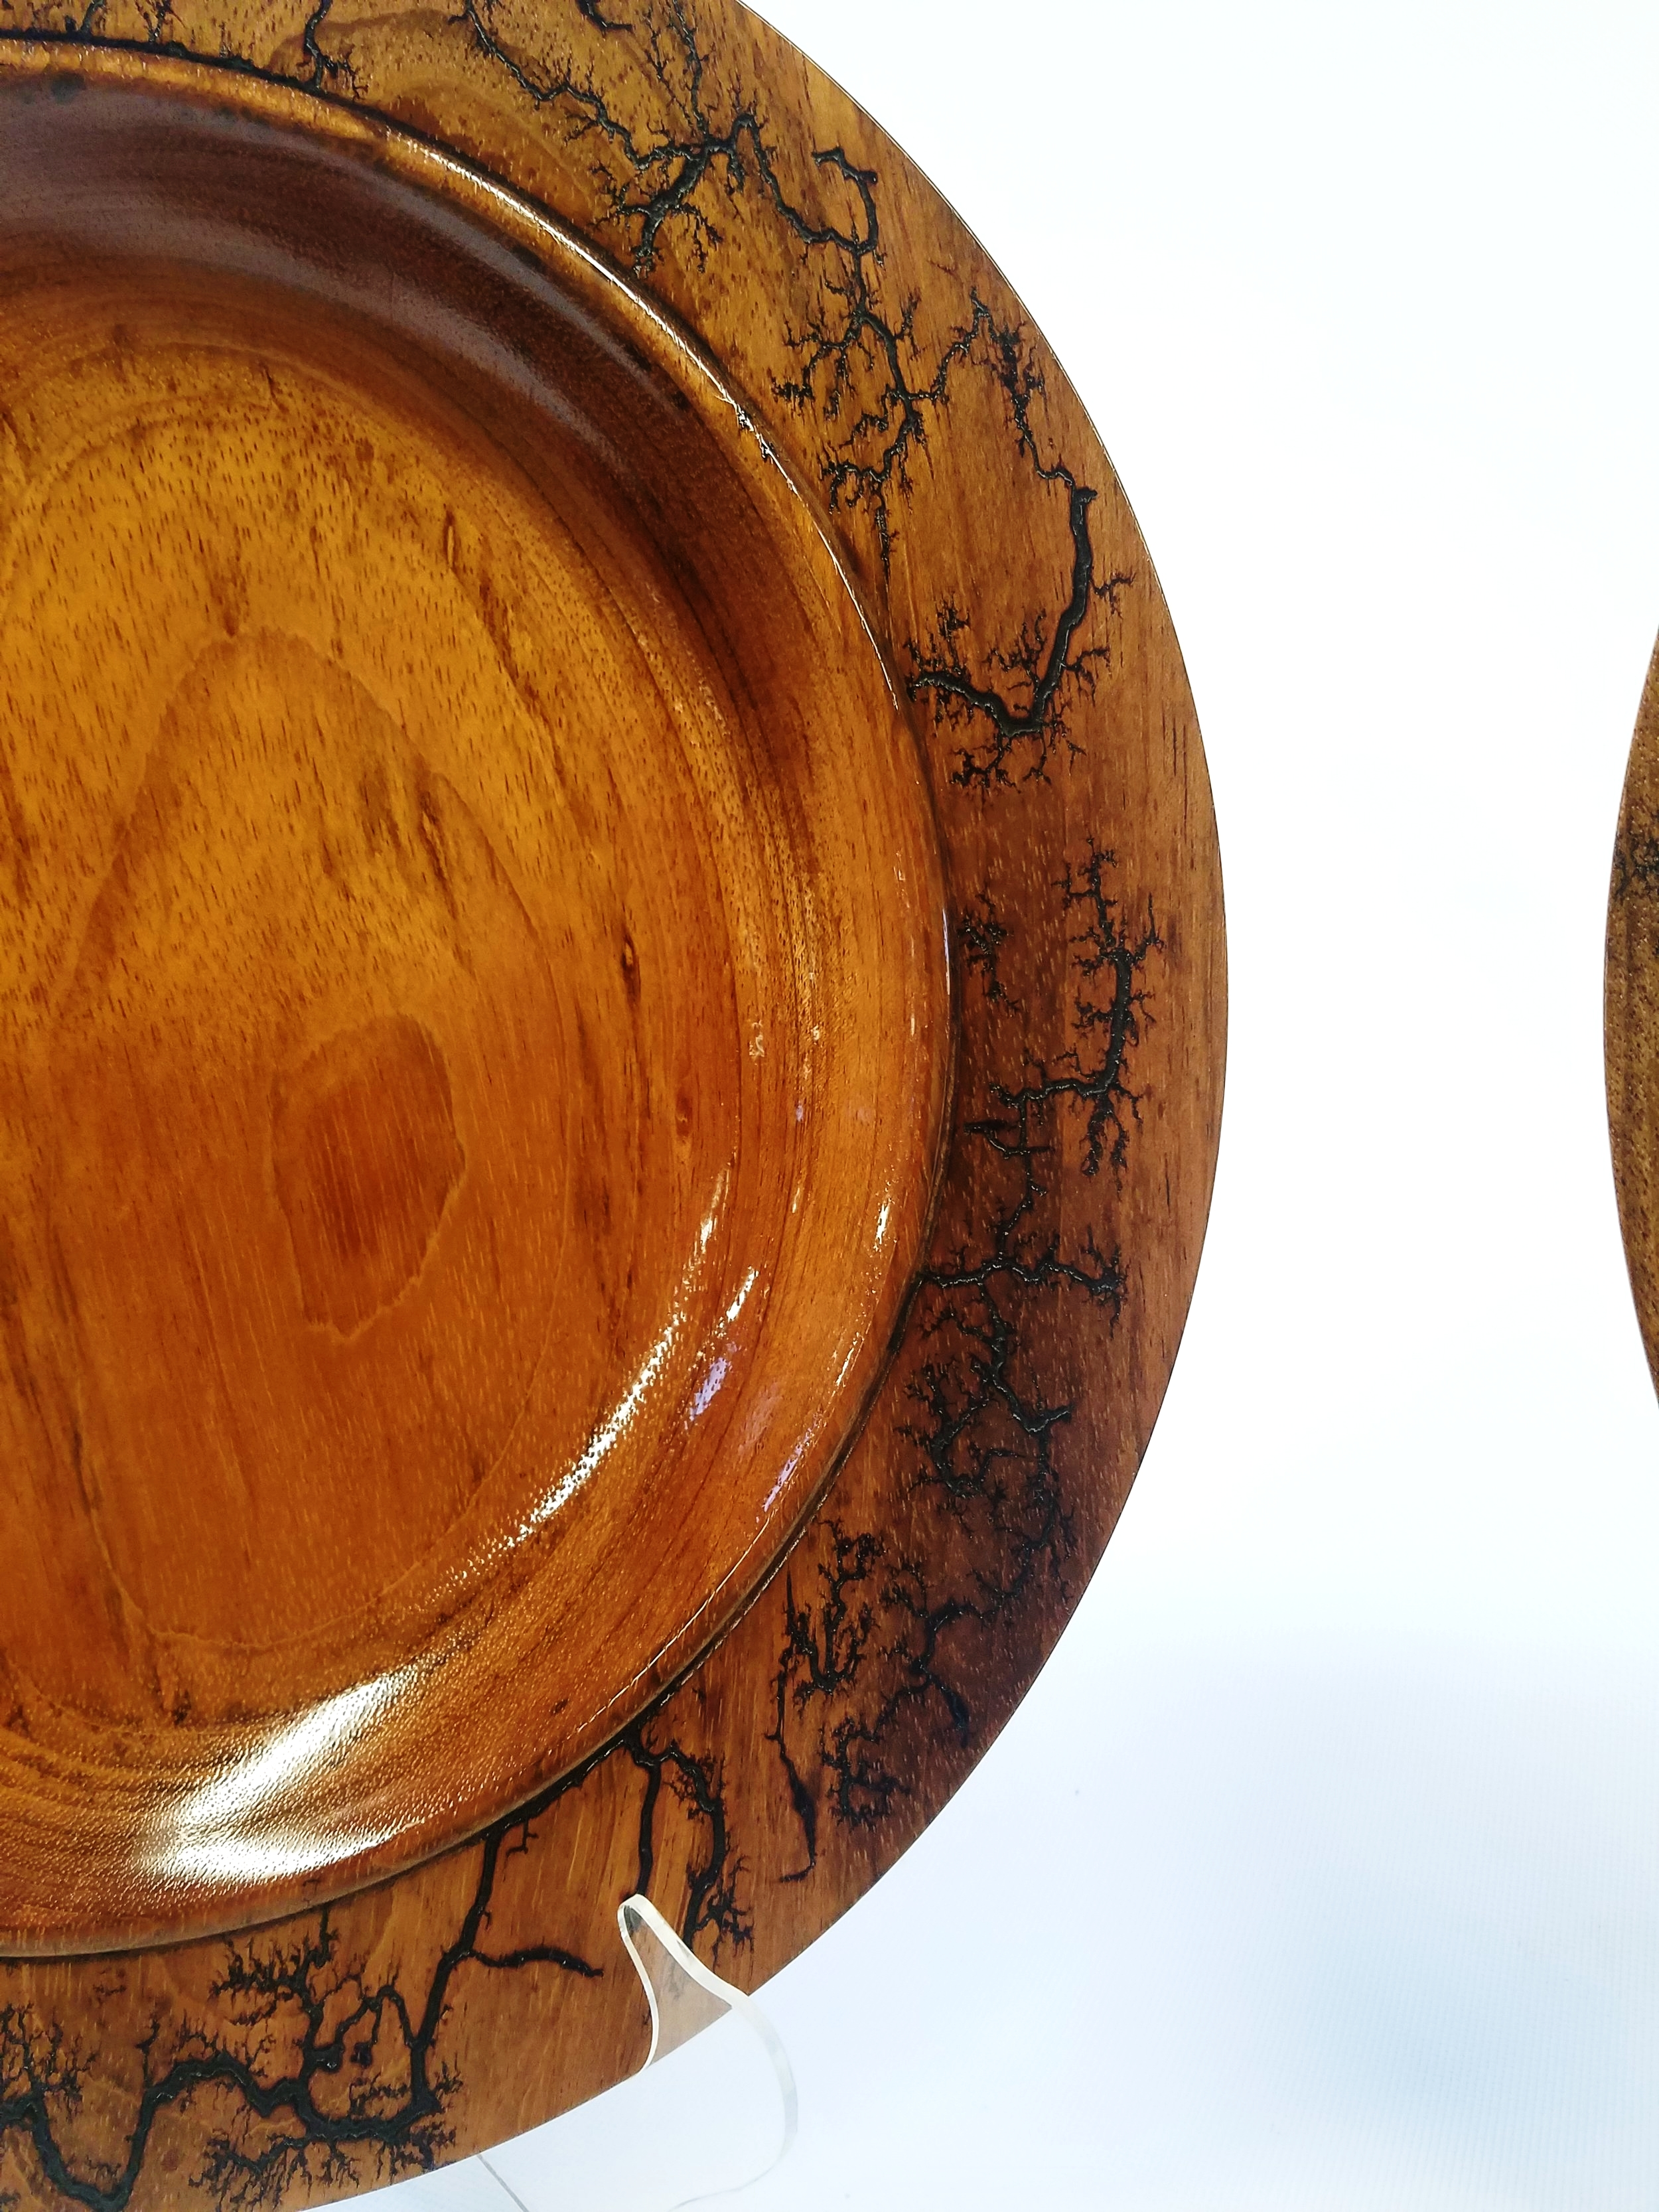 Jatoba Platter, one of a pair with Lichtenberg figuring